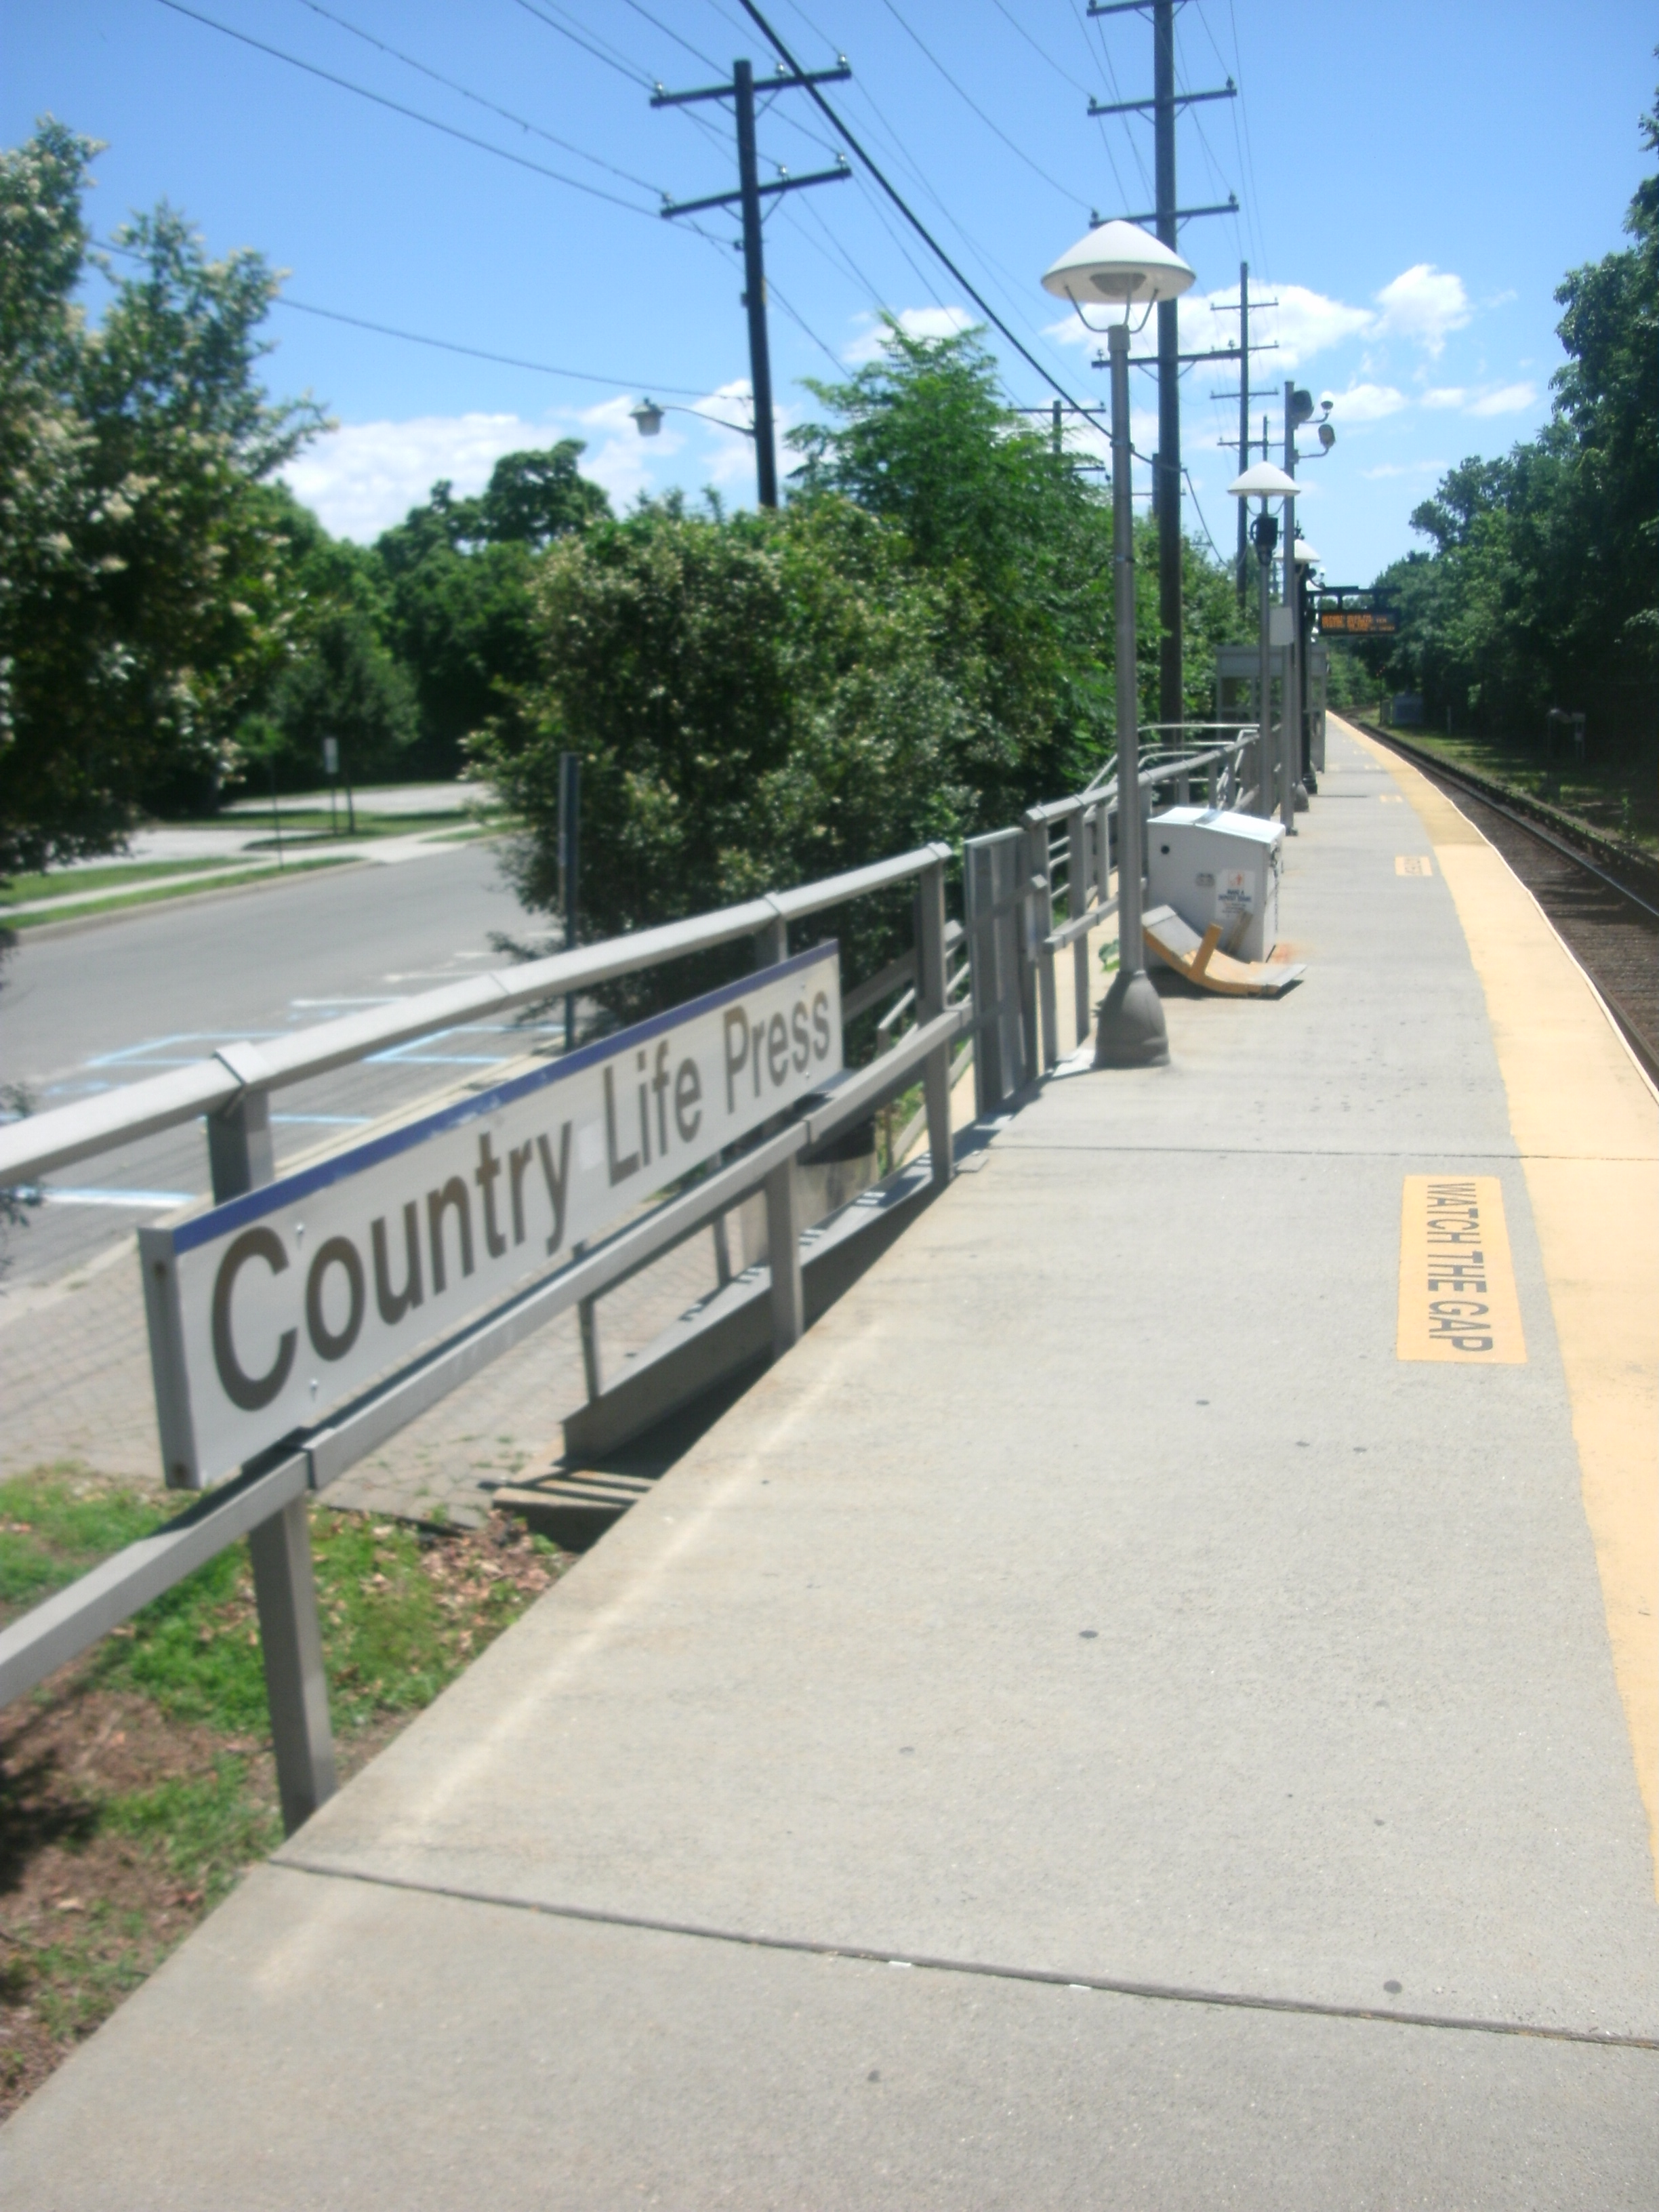 The station at Country Life Press, facing Hempstead-bound in June 2012